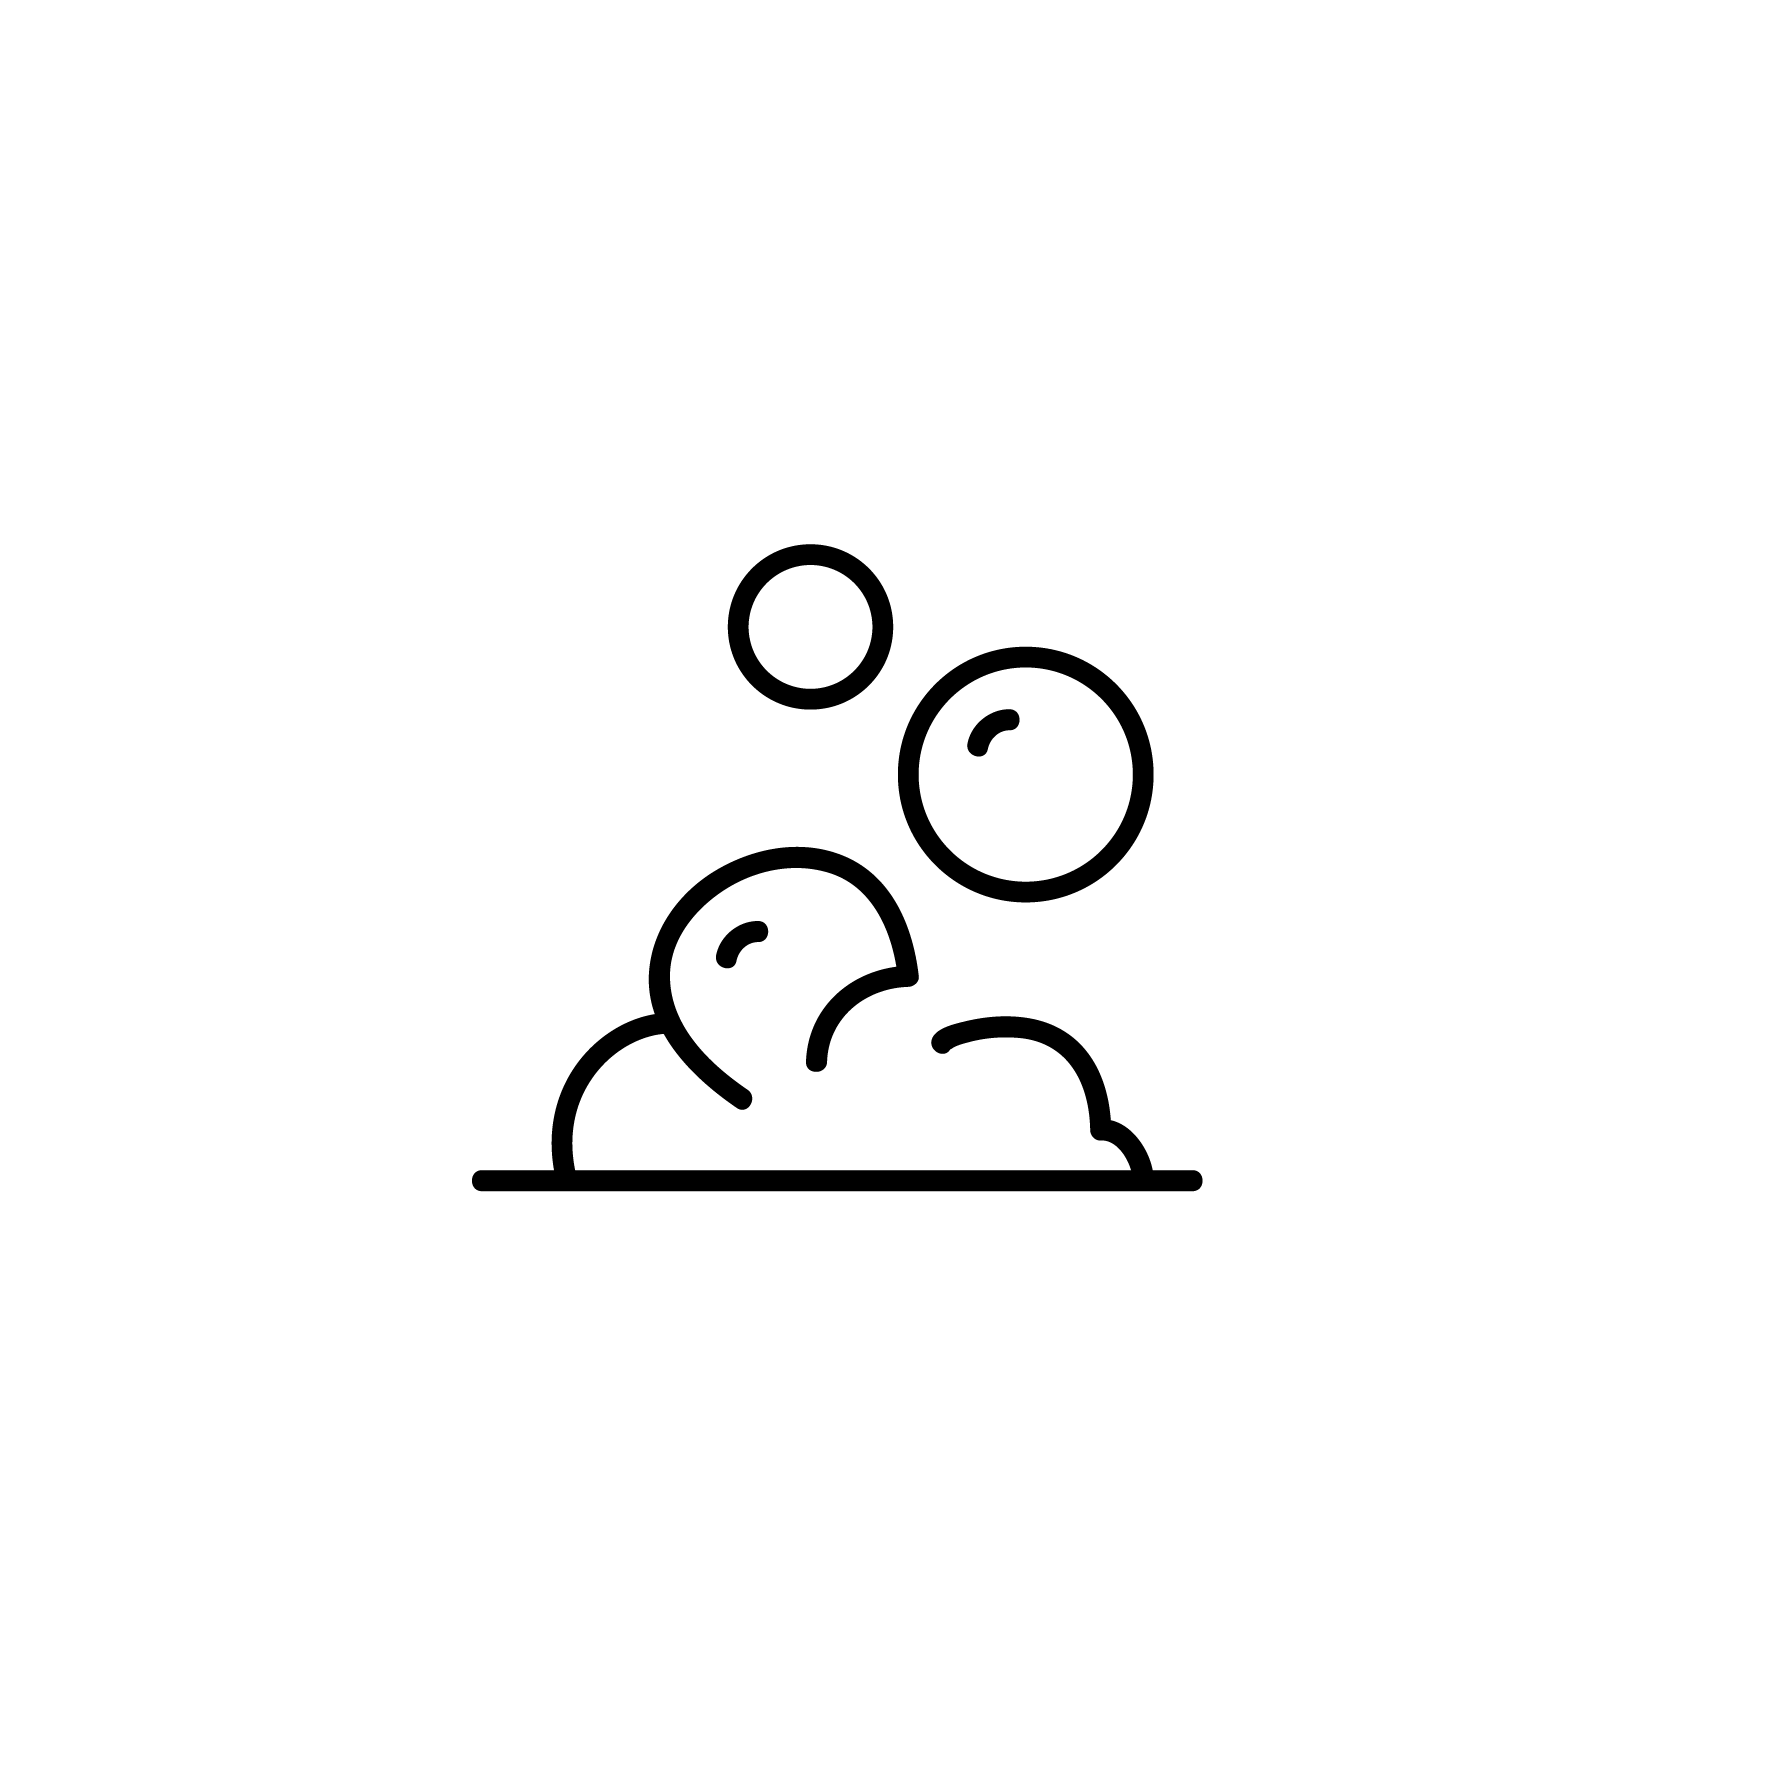 Pictogram of bubles during the washing process on white background.